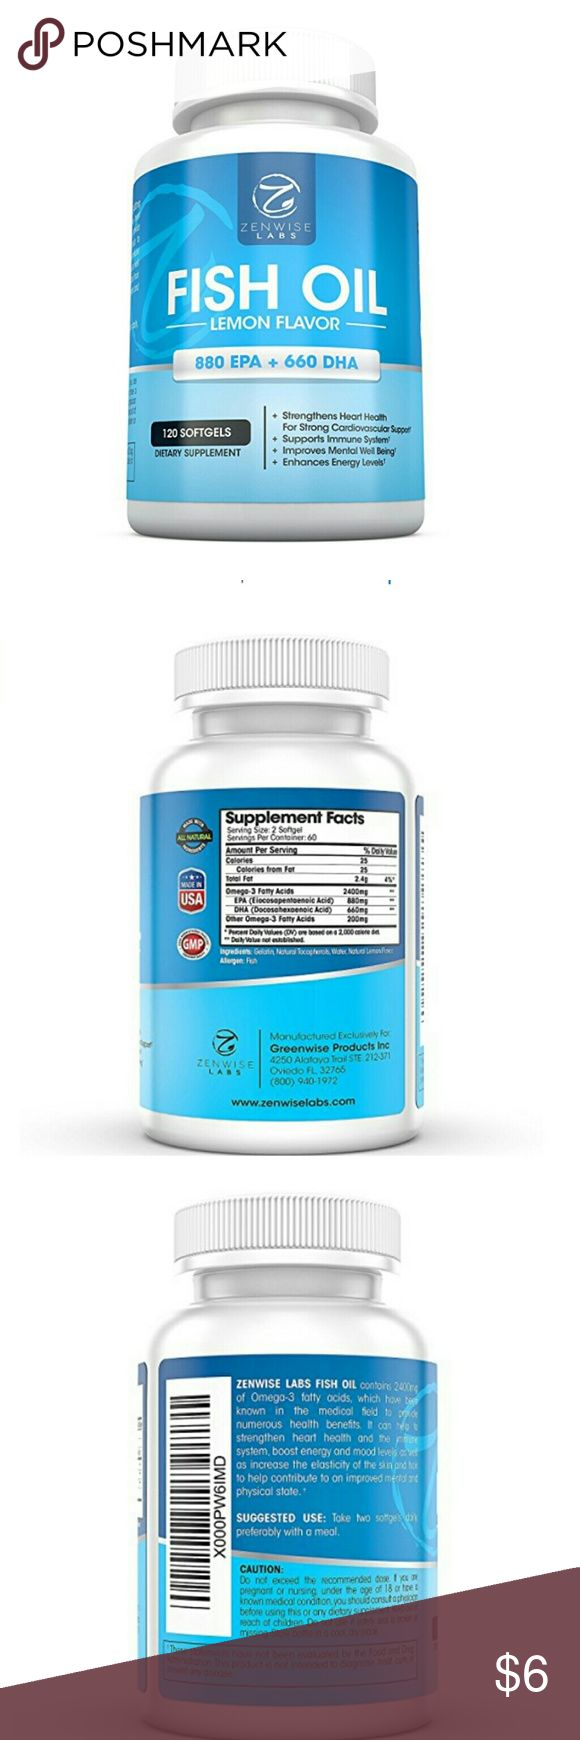 Reduce Joint Inflammation & More Tasteless and burpless Fish Oil dietary softgels help boost energy, brain function and mood levels, as well as reducing hip and joint inflammation, restoring skin elasticity and providing nourishment to hair. Also supports weight loss by regulating cholesterol to help you feel good in no time.  *BUNDLE WITH OTHER ITEMS TO SAVE ON SHIPPING & 15% OFF BUNDLE DISCOUNT* Other